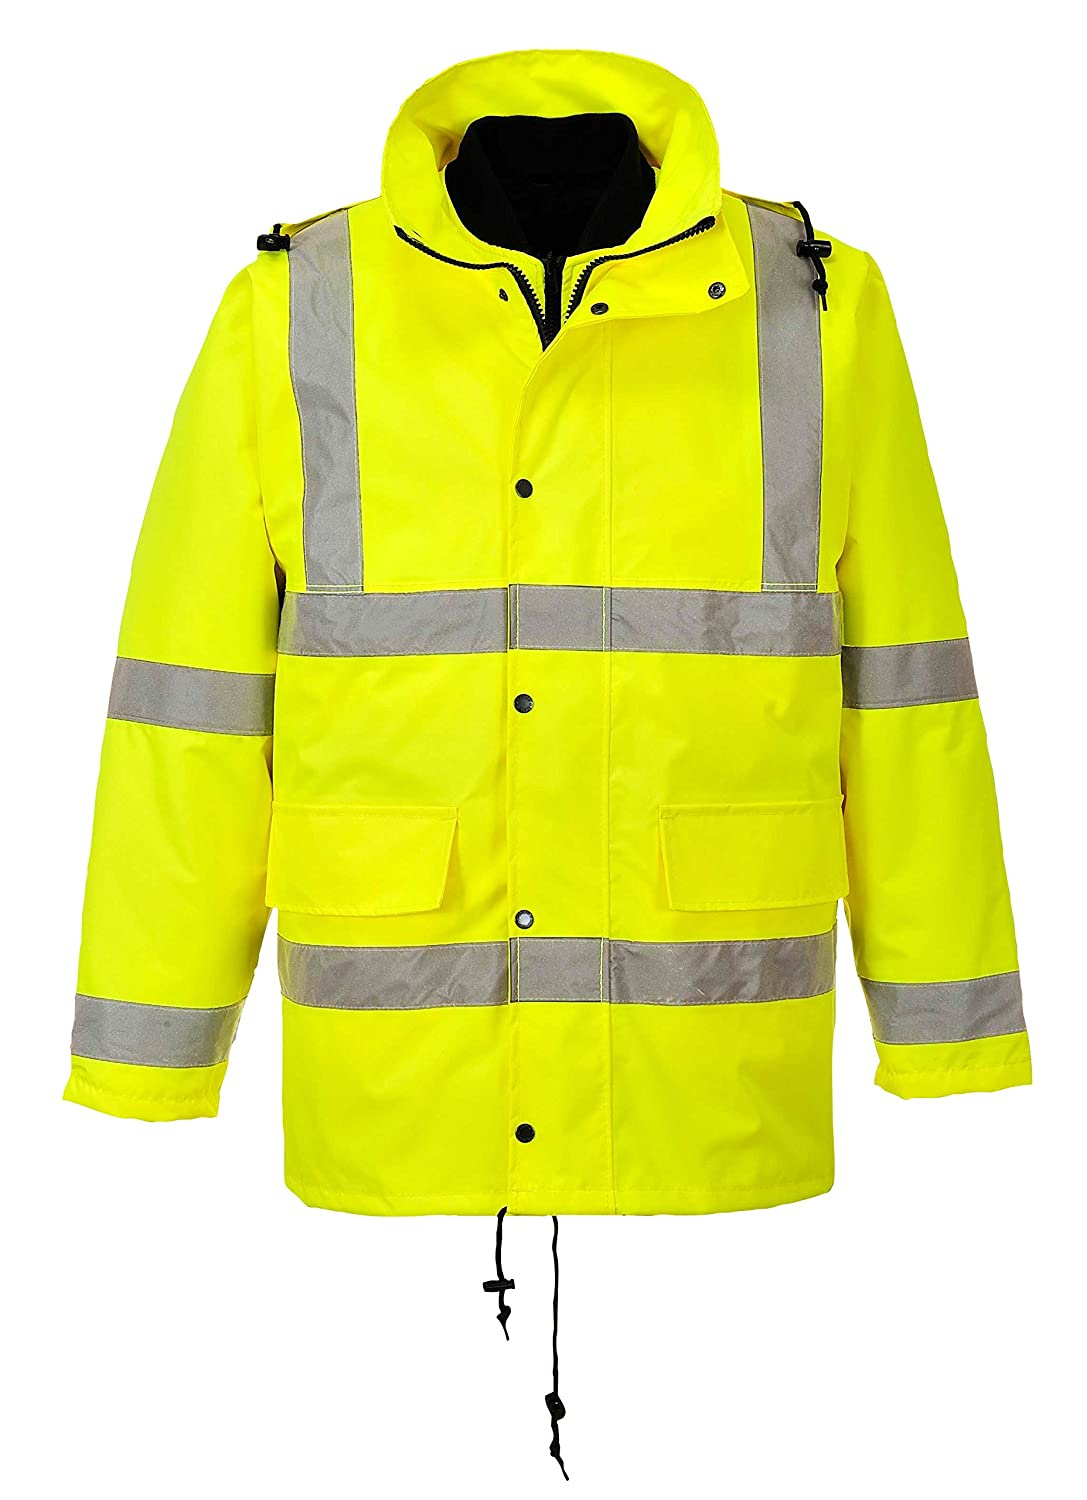 Portwest S461YERXXXL Hi-Vis Breathable Jacket, Regular, Size 3X-Large, Yellow Portwest Clothing Ltd